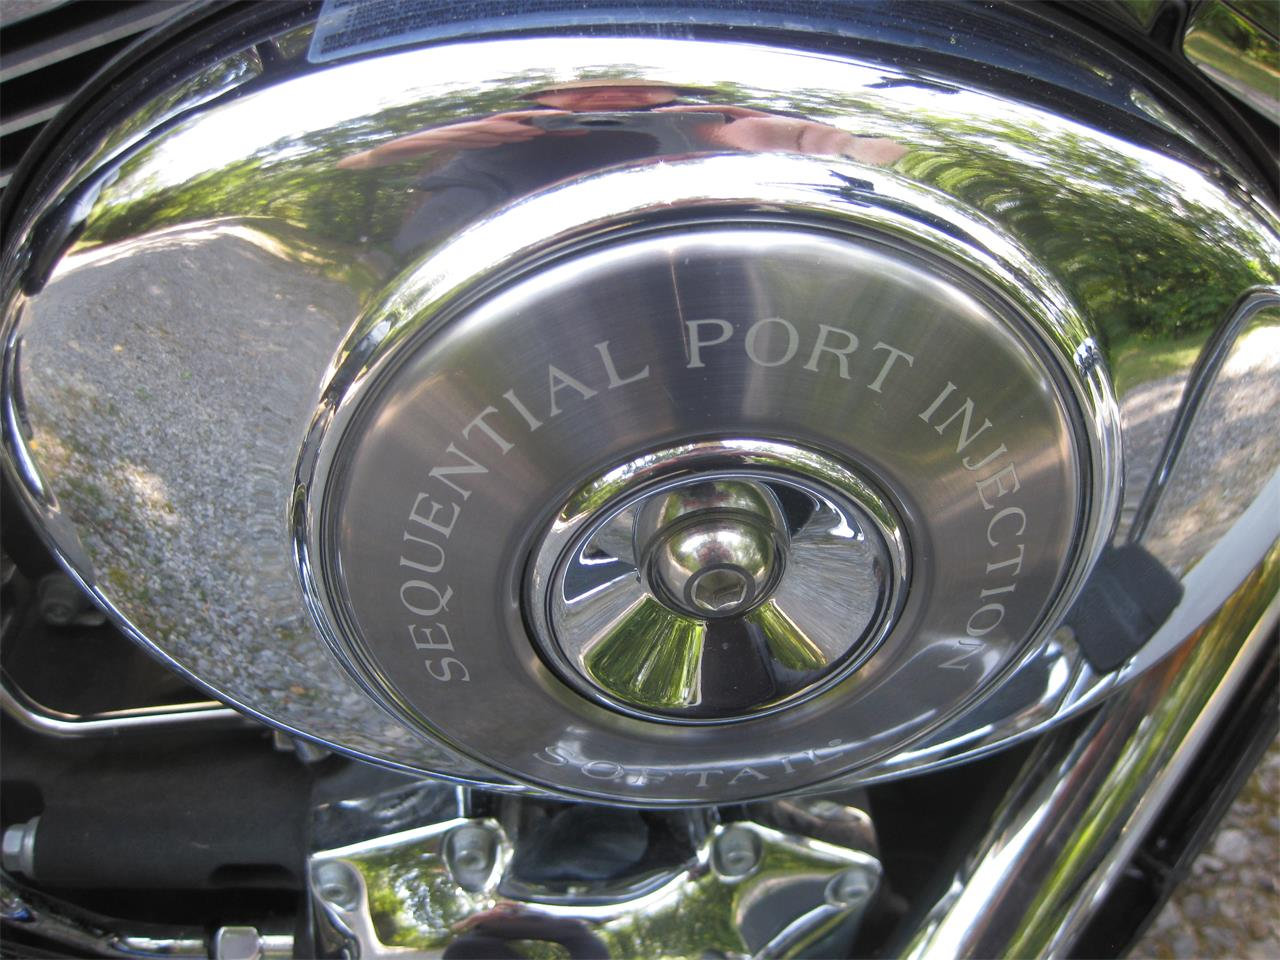 2005 Harley-Davidson Softail (CC-1051403) for sale in Middletown, Virginia